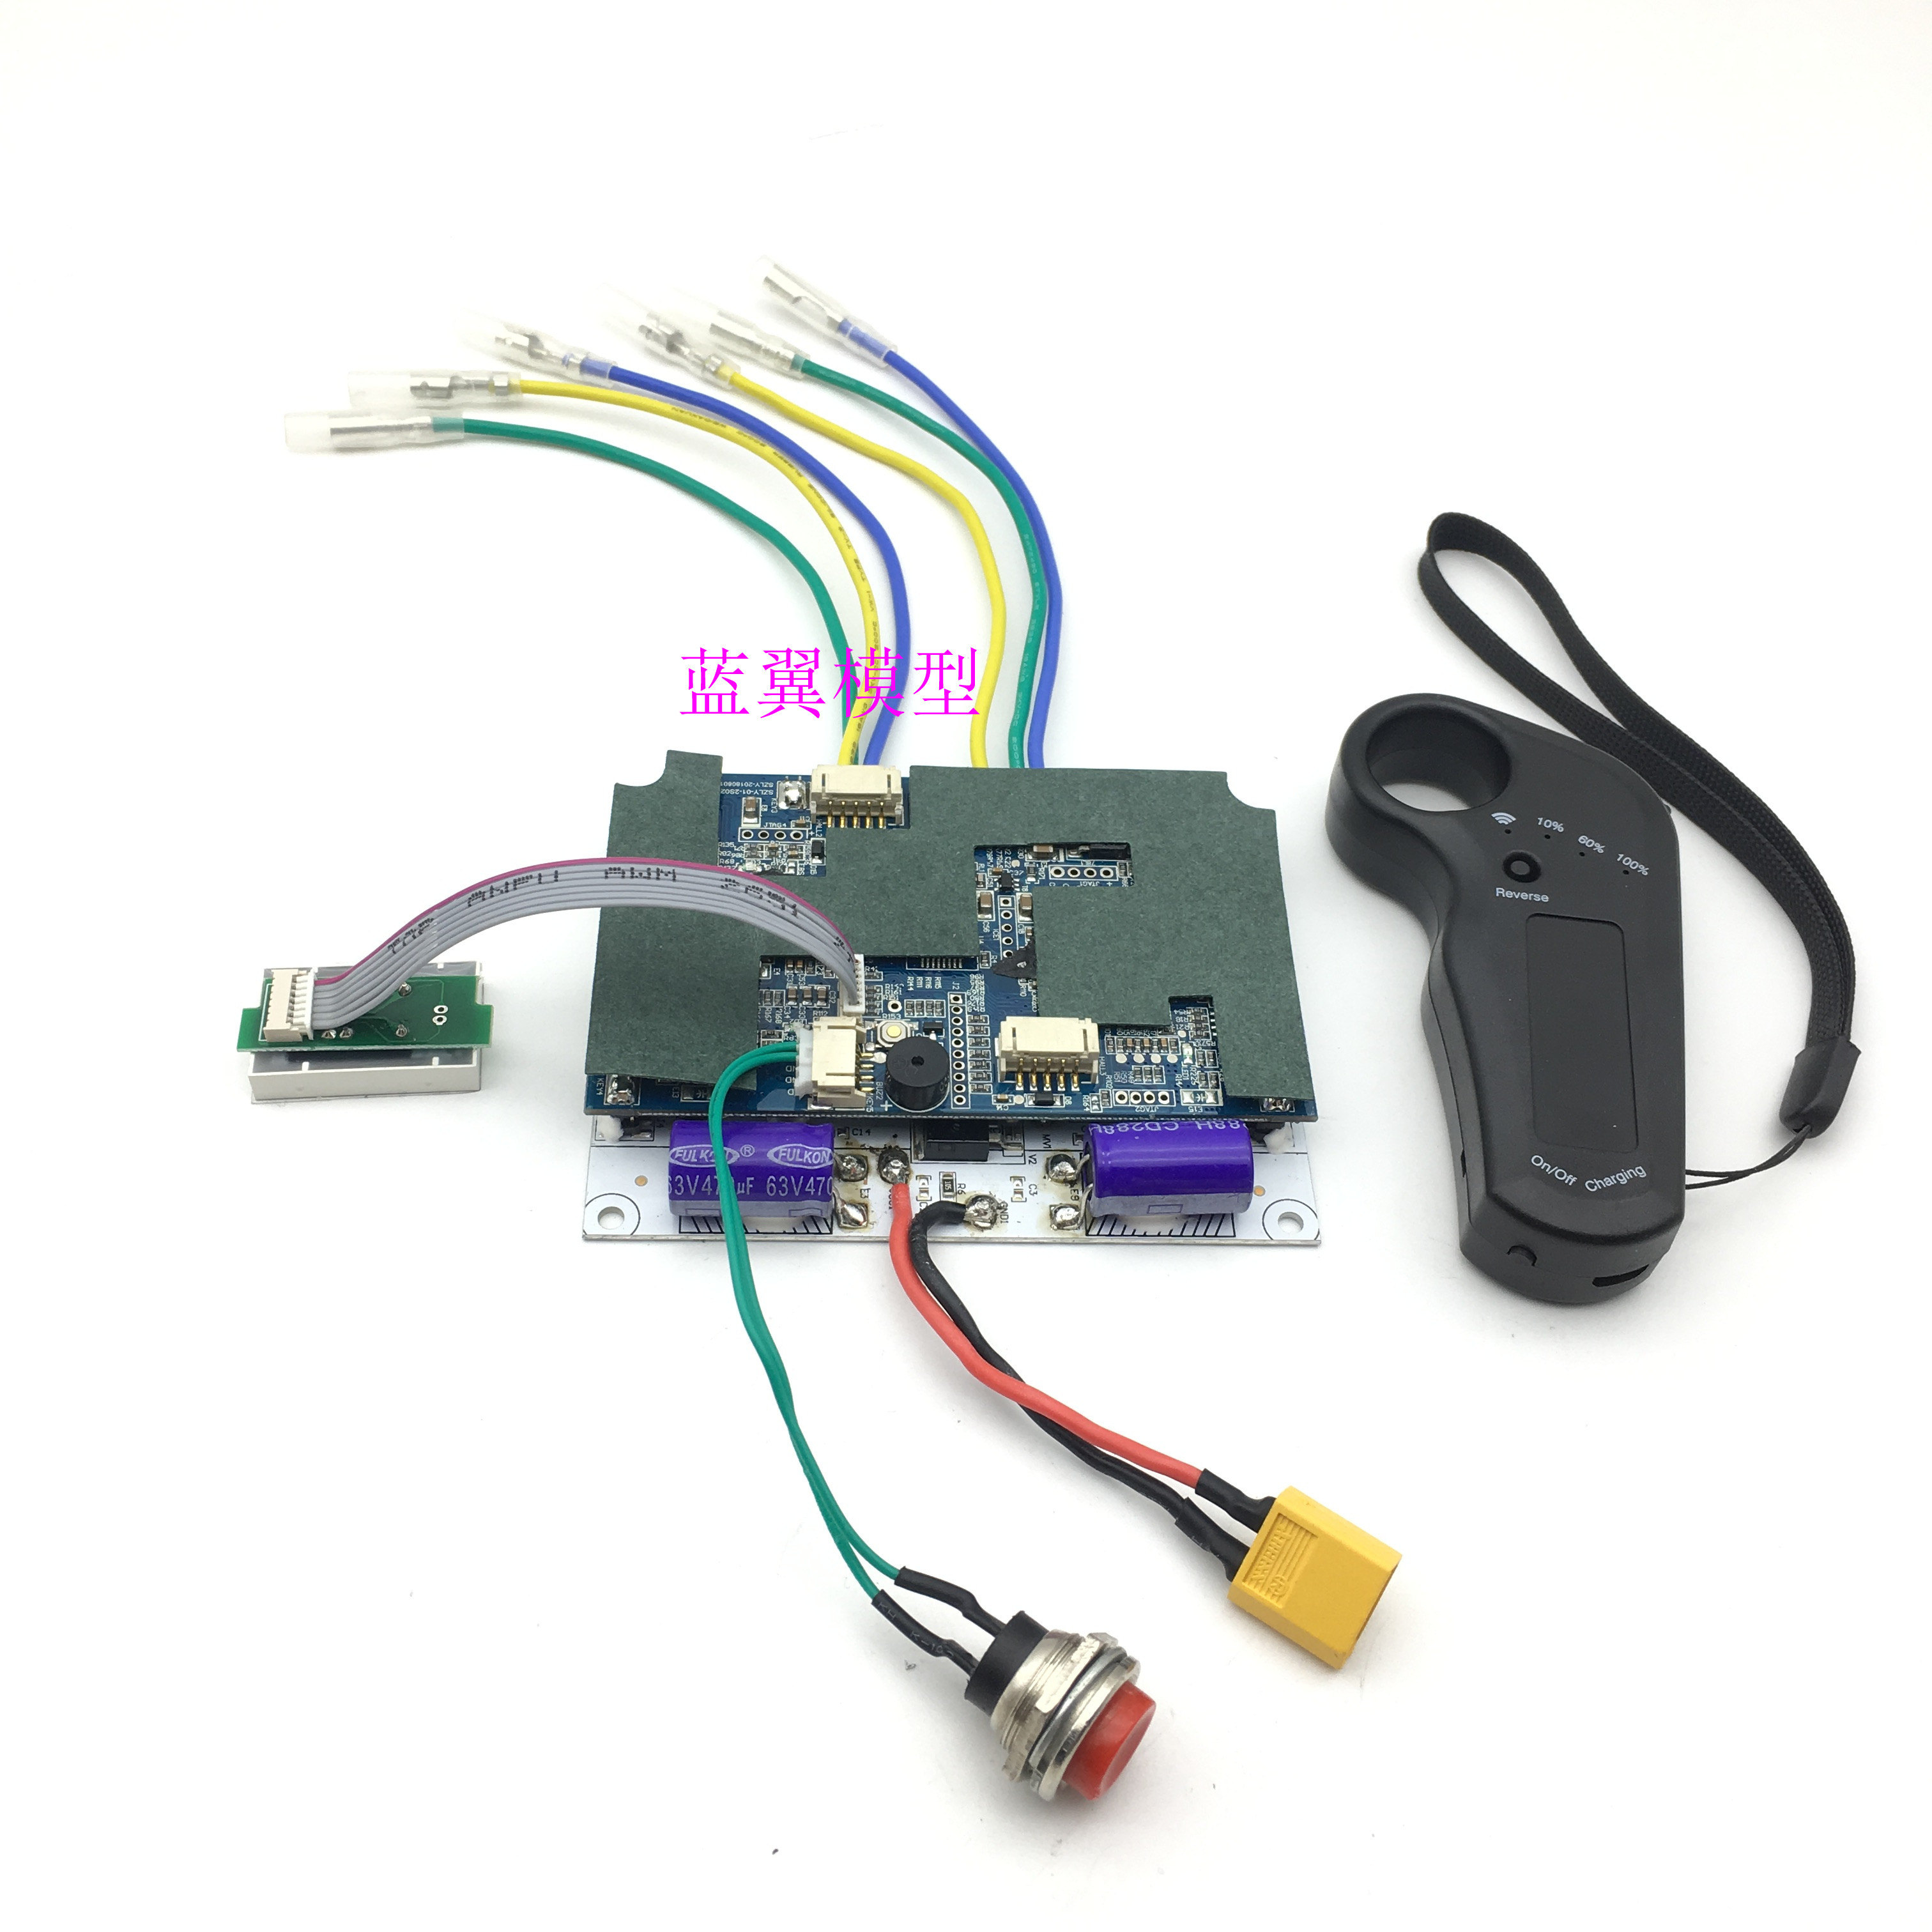 Remote control electric scooter controller double drive hub brushless motor motor control board ESC 6s/24V 7s/29.4V 10s/36VRemote control electric scooter controller double drive hub brushless motor motor control board ESC 6s/24V 7s/29.4V 10s/36V